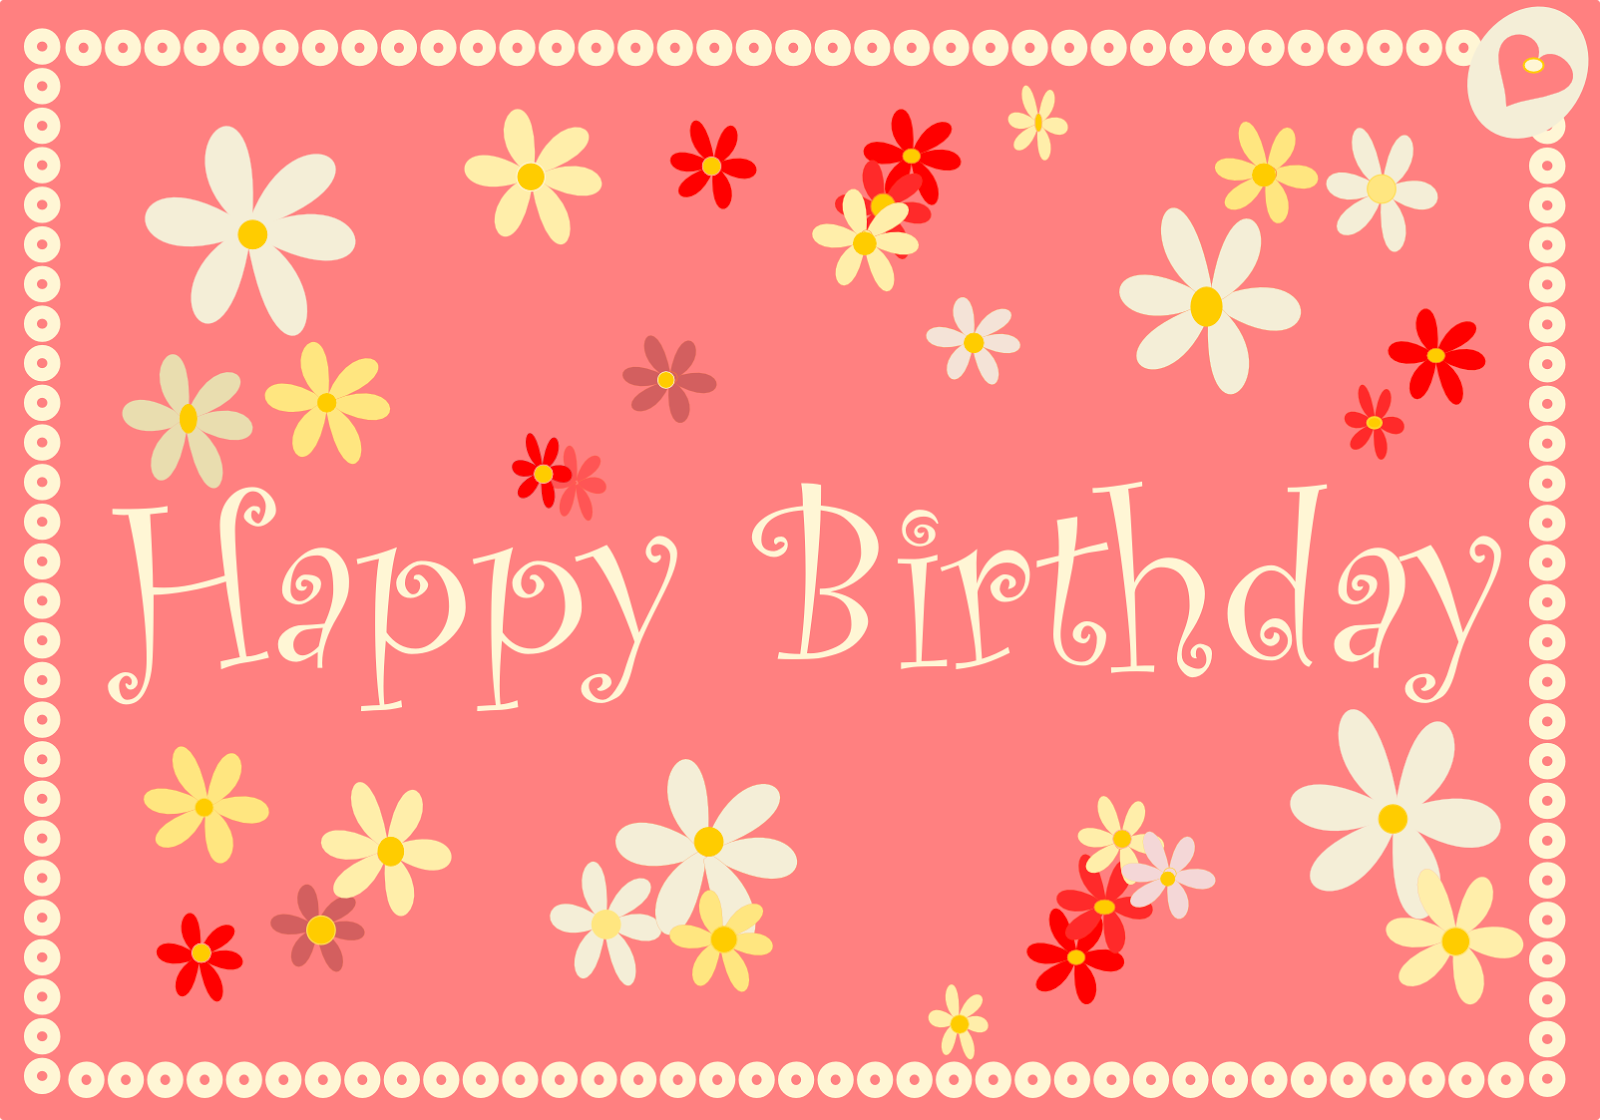 free printable Happy Birthday Cards ausdruckbare – Free Printable Mother Birthday Cards